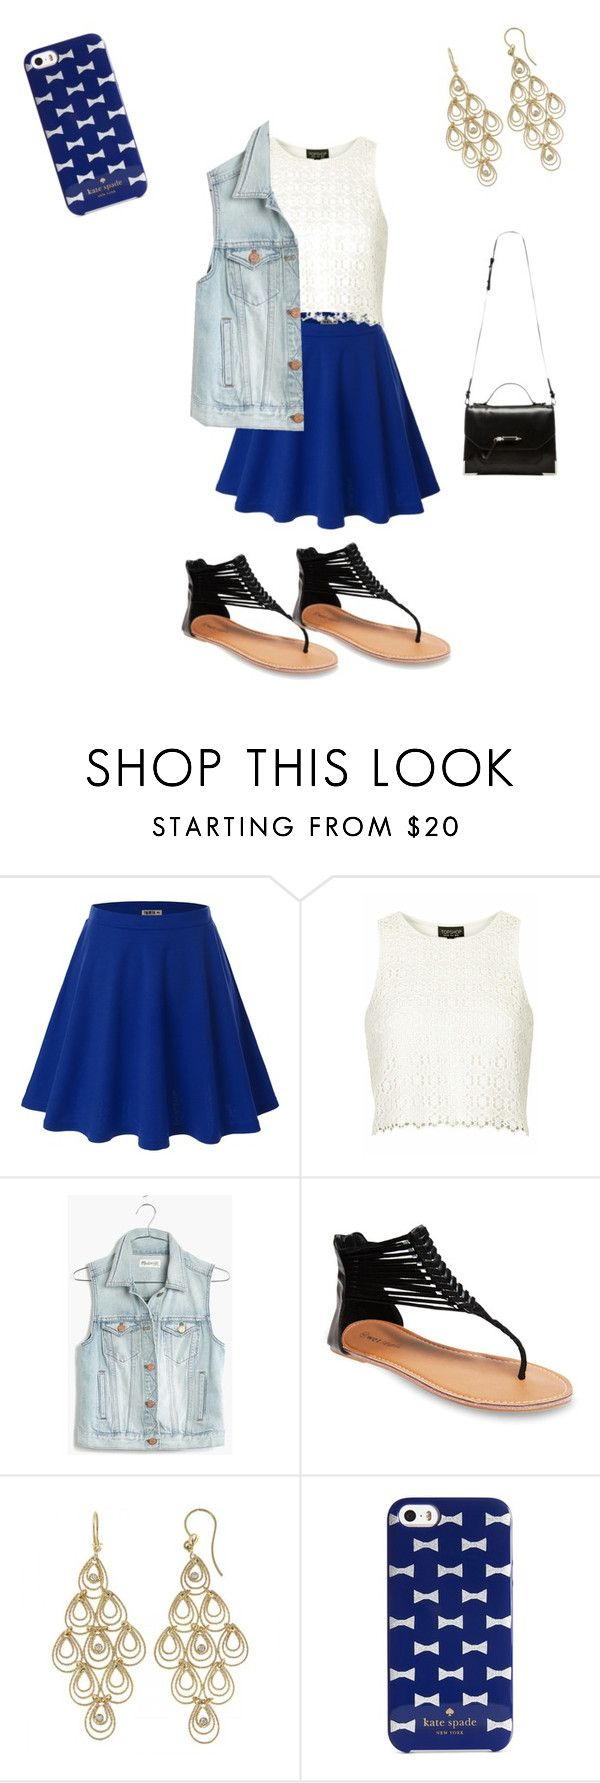 """blue"" by rachelmwebb-1 ❤ liked on Polyvore featuring Doublju, Topshop, Madewell, Wet Seal, Roberto Coin, Kate Spade and Mackage"